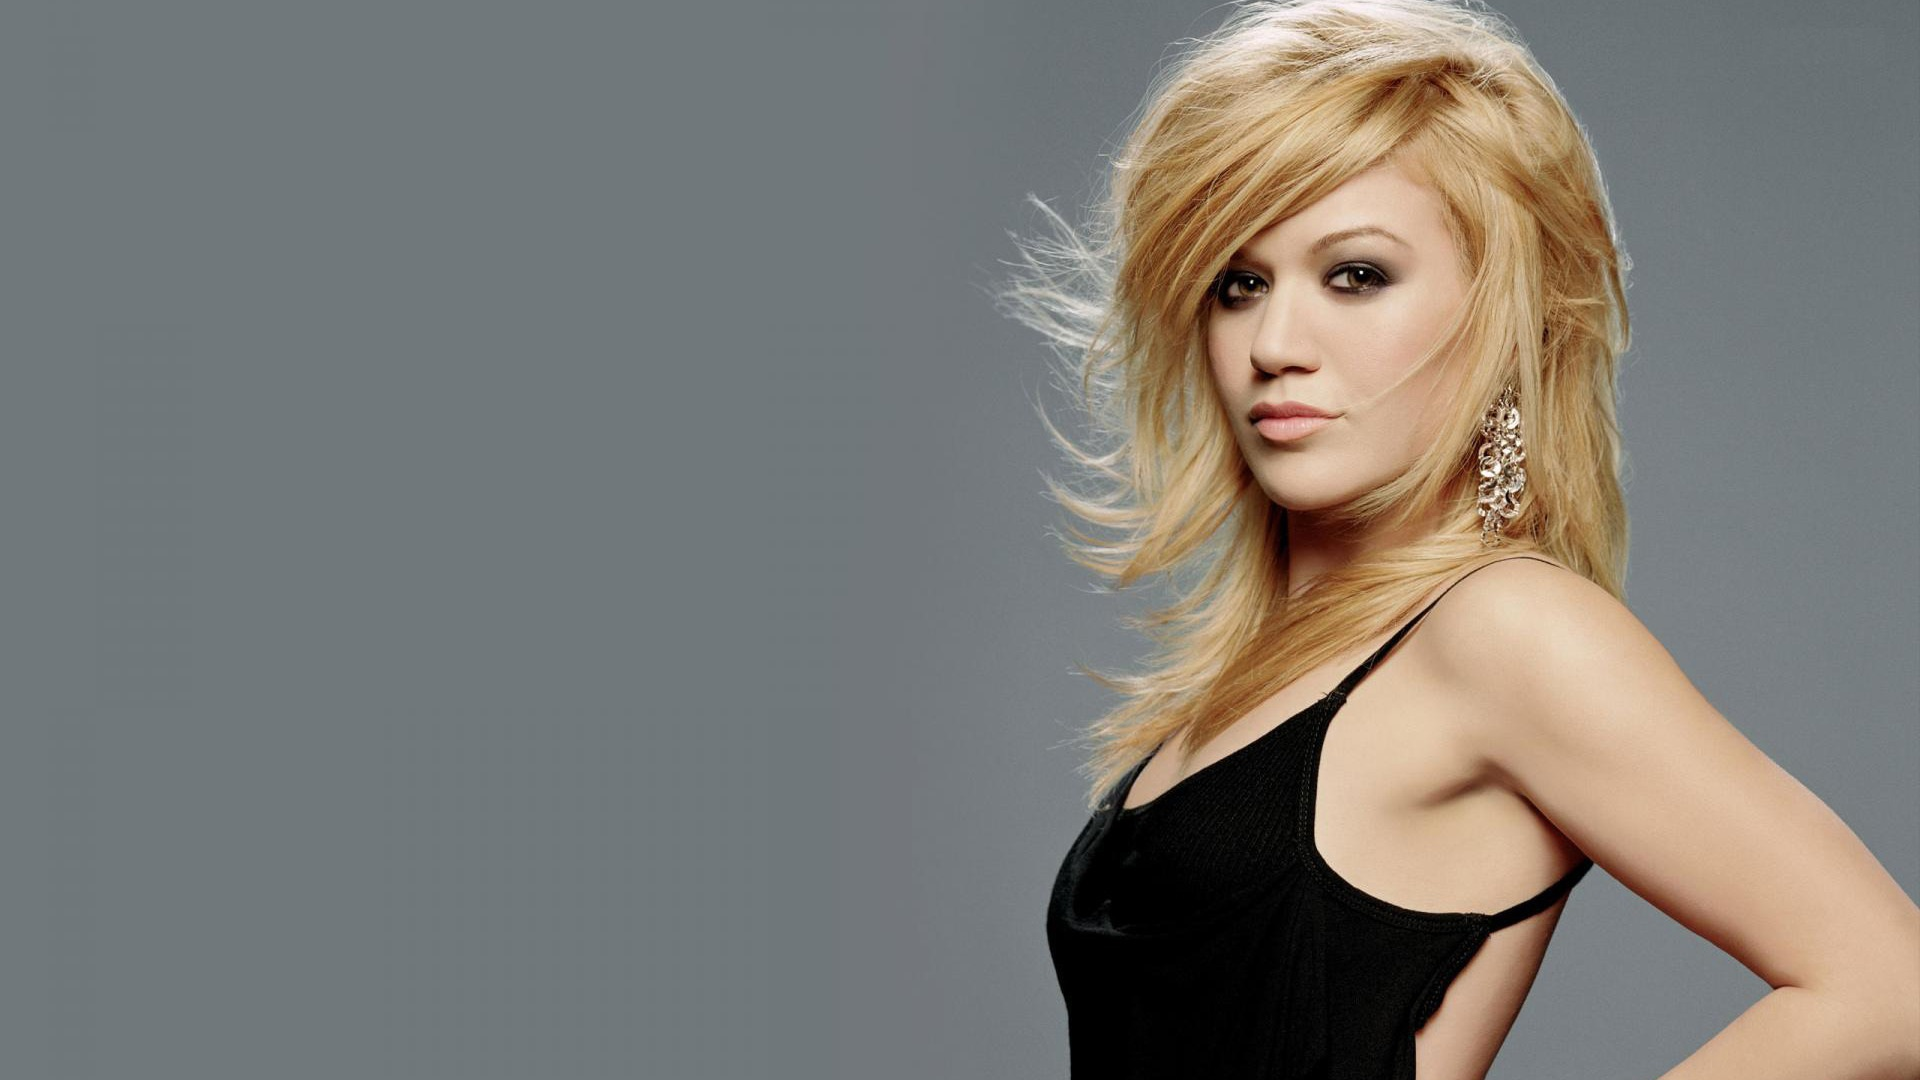 Fresh Kelly Clarkson  Wallpaper HD Wallpaper